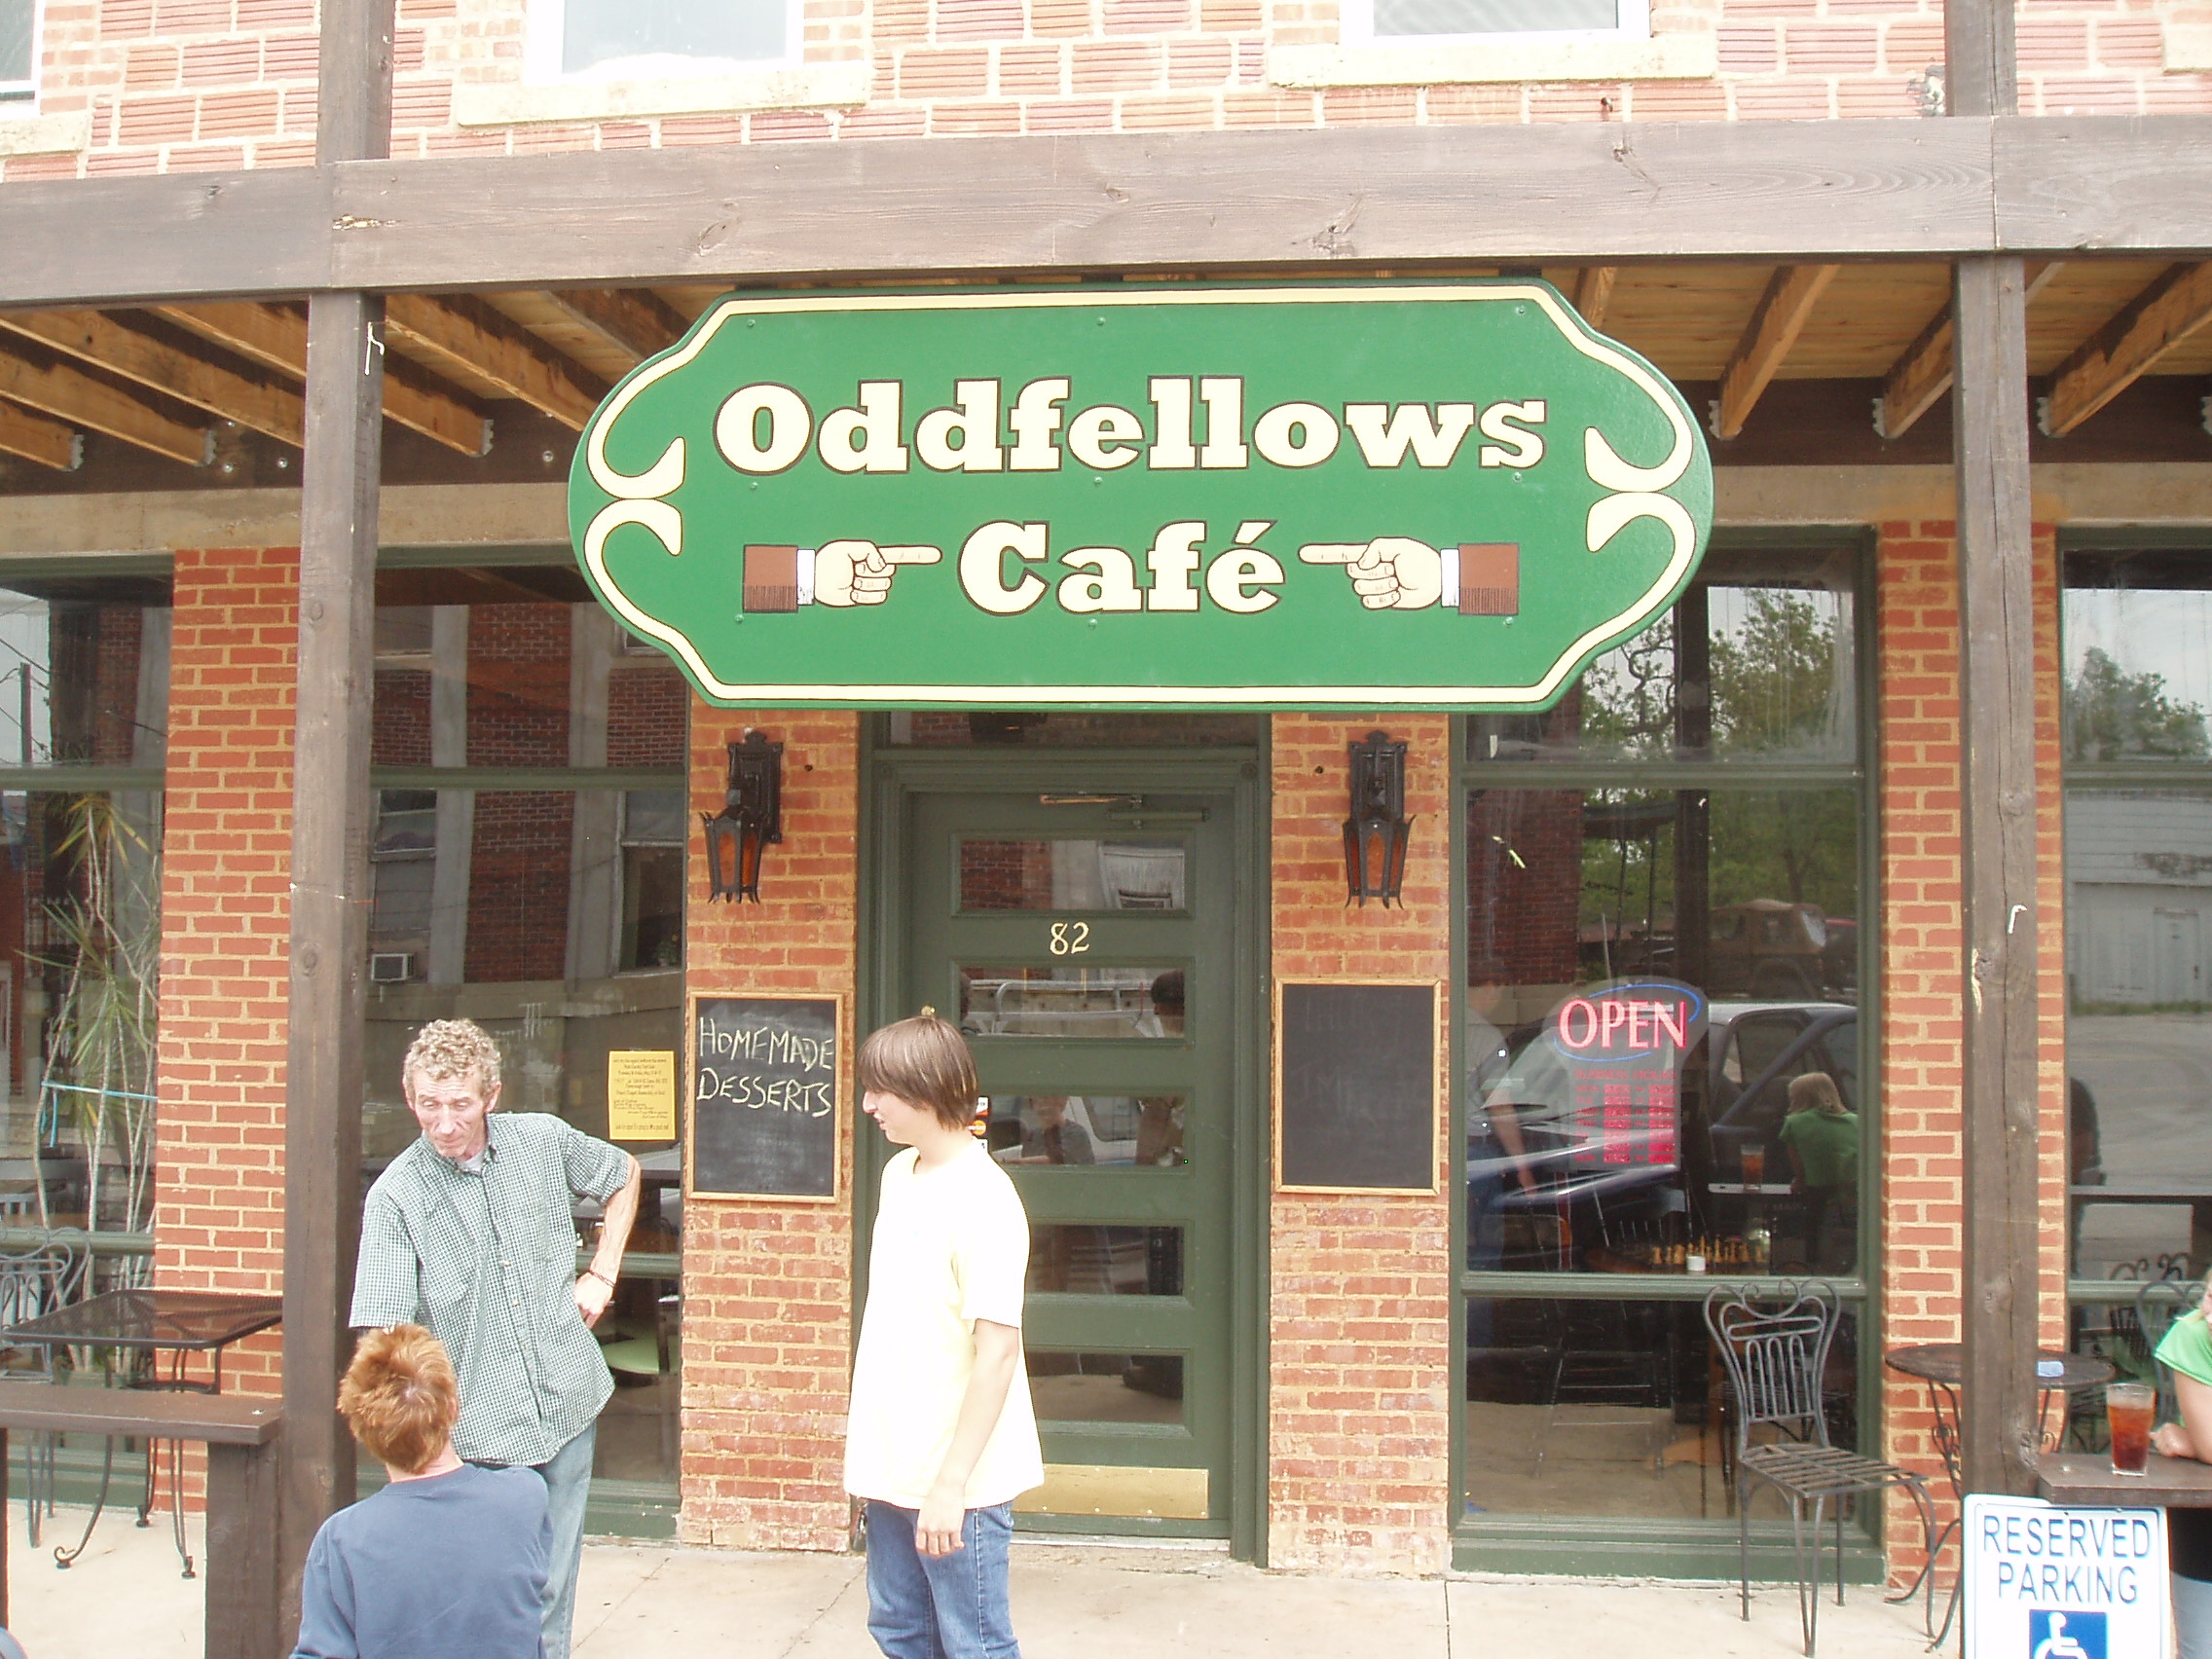 Hand Painted Signs_fairgrove_oddfellows cafe.JPG